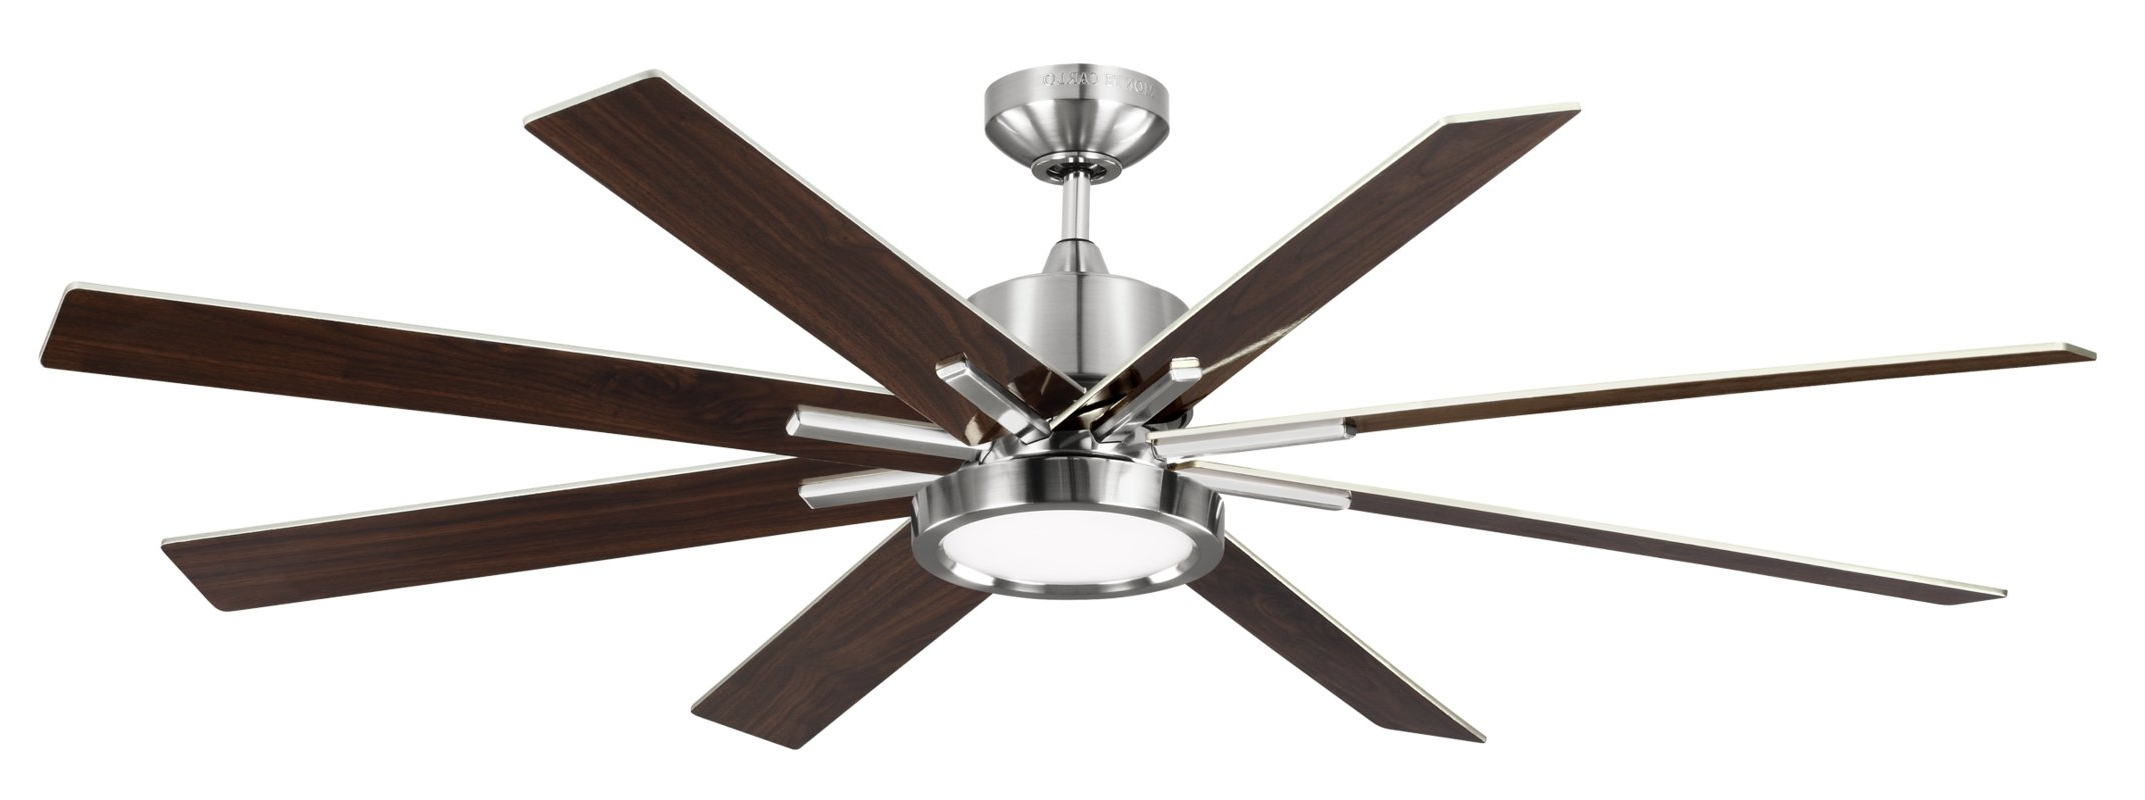 "Wade Logan 60"" Woodlynne 8 Blade Outdoor Ceiling Fan With Remote Within Preferred Outdoor Ceiling Fans With Lights And Remote (View 18 of 20)"